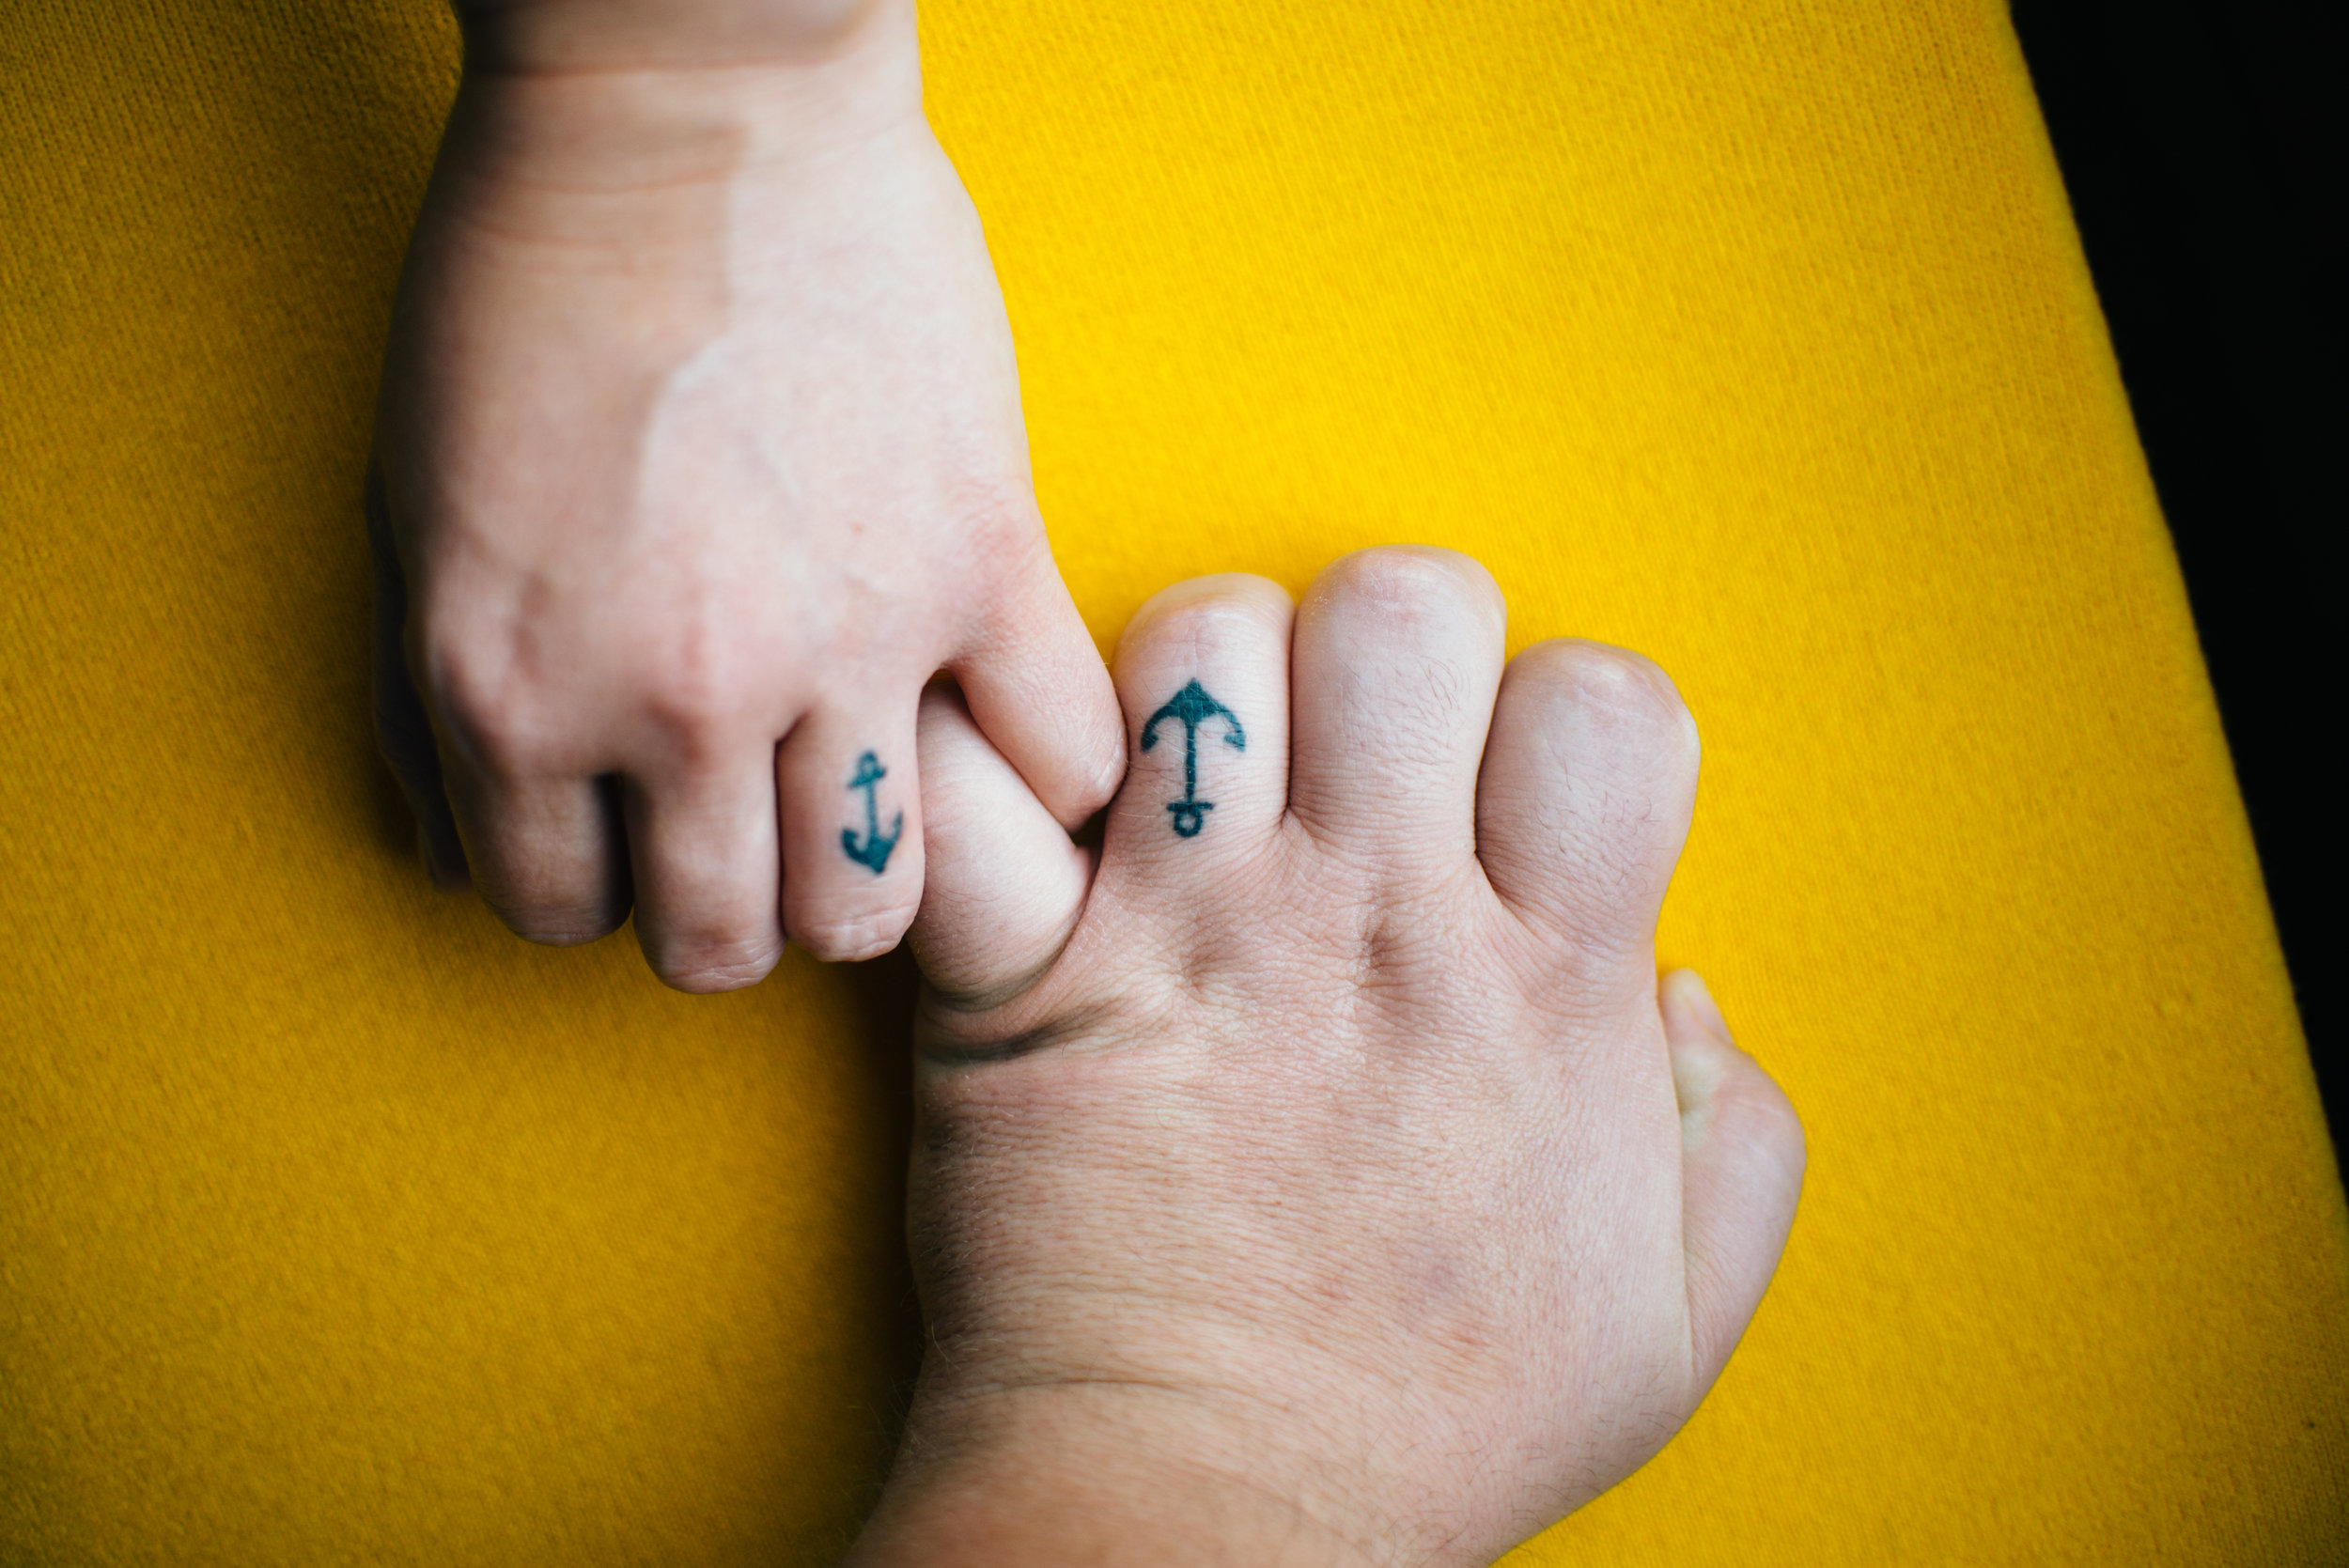 Hands in pinky promise against a yellow background with wedding ring tattoos of anchors on ring fingers